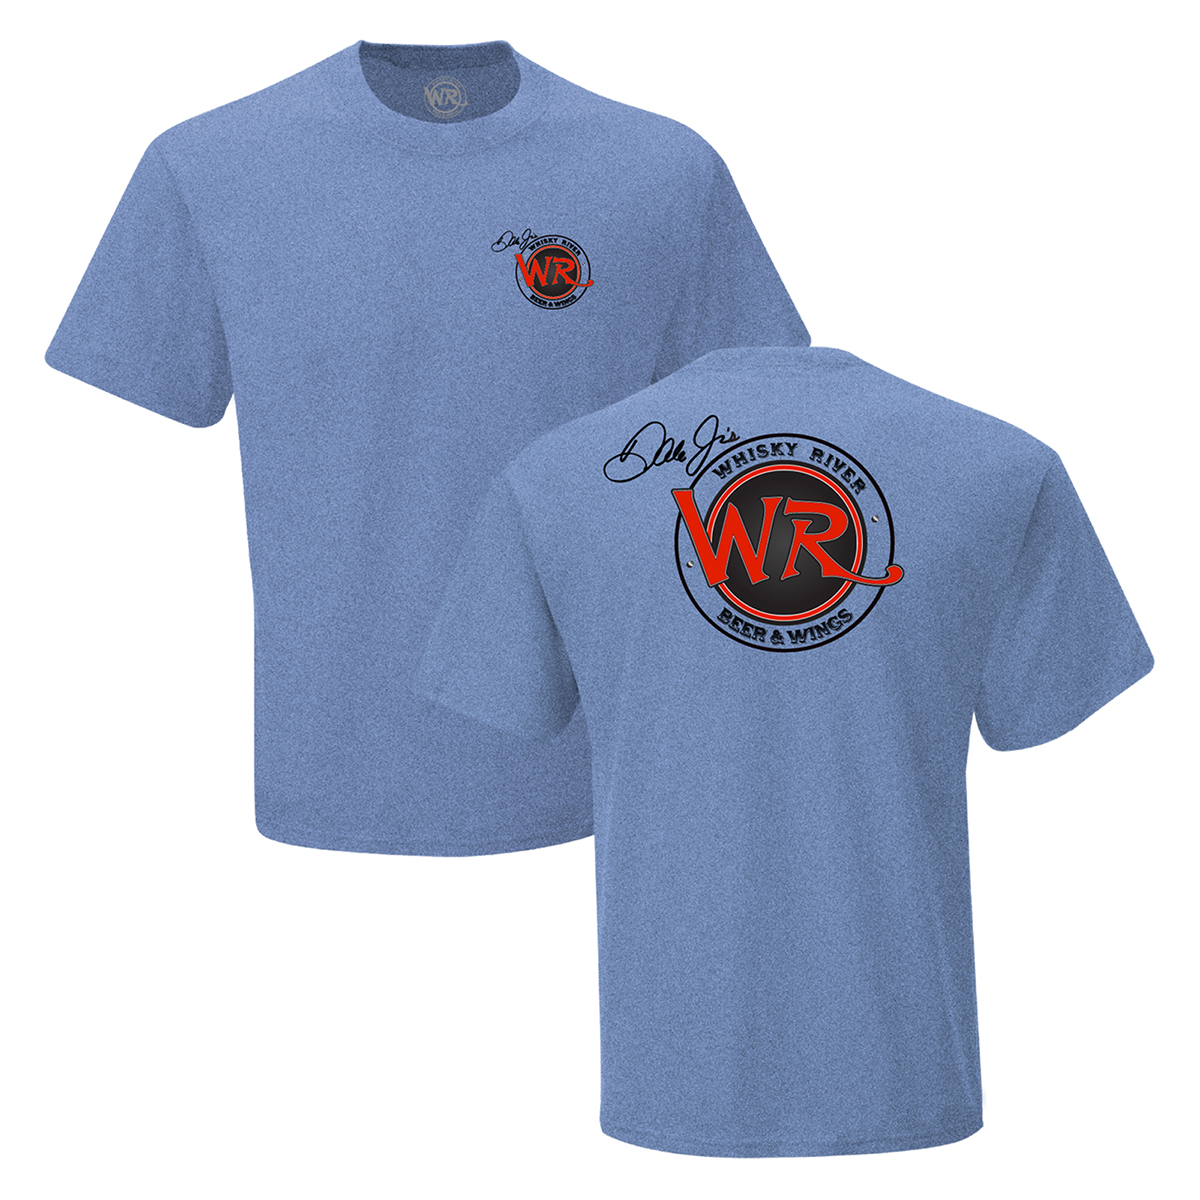 Whisky River T-shirt - Heather Blue